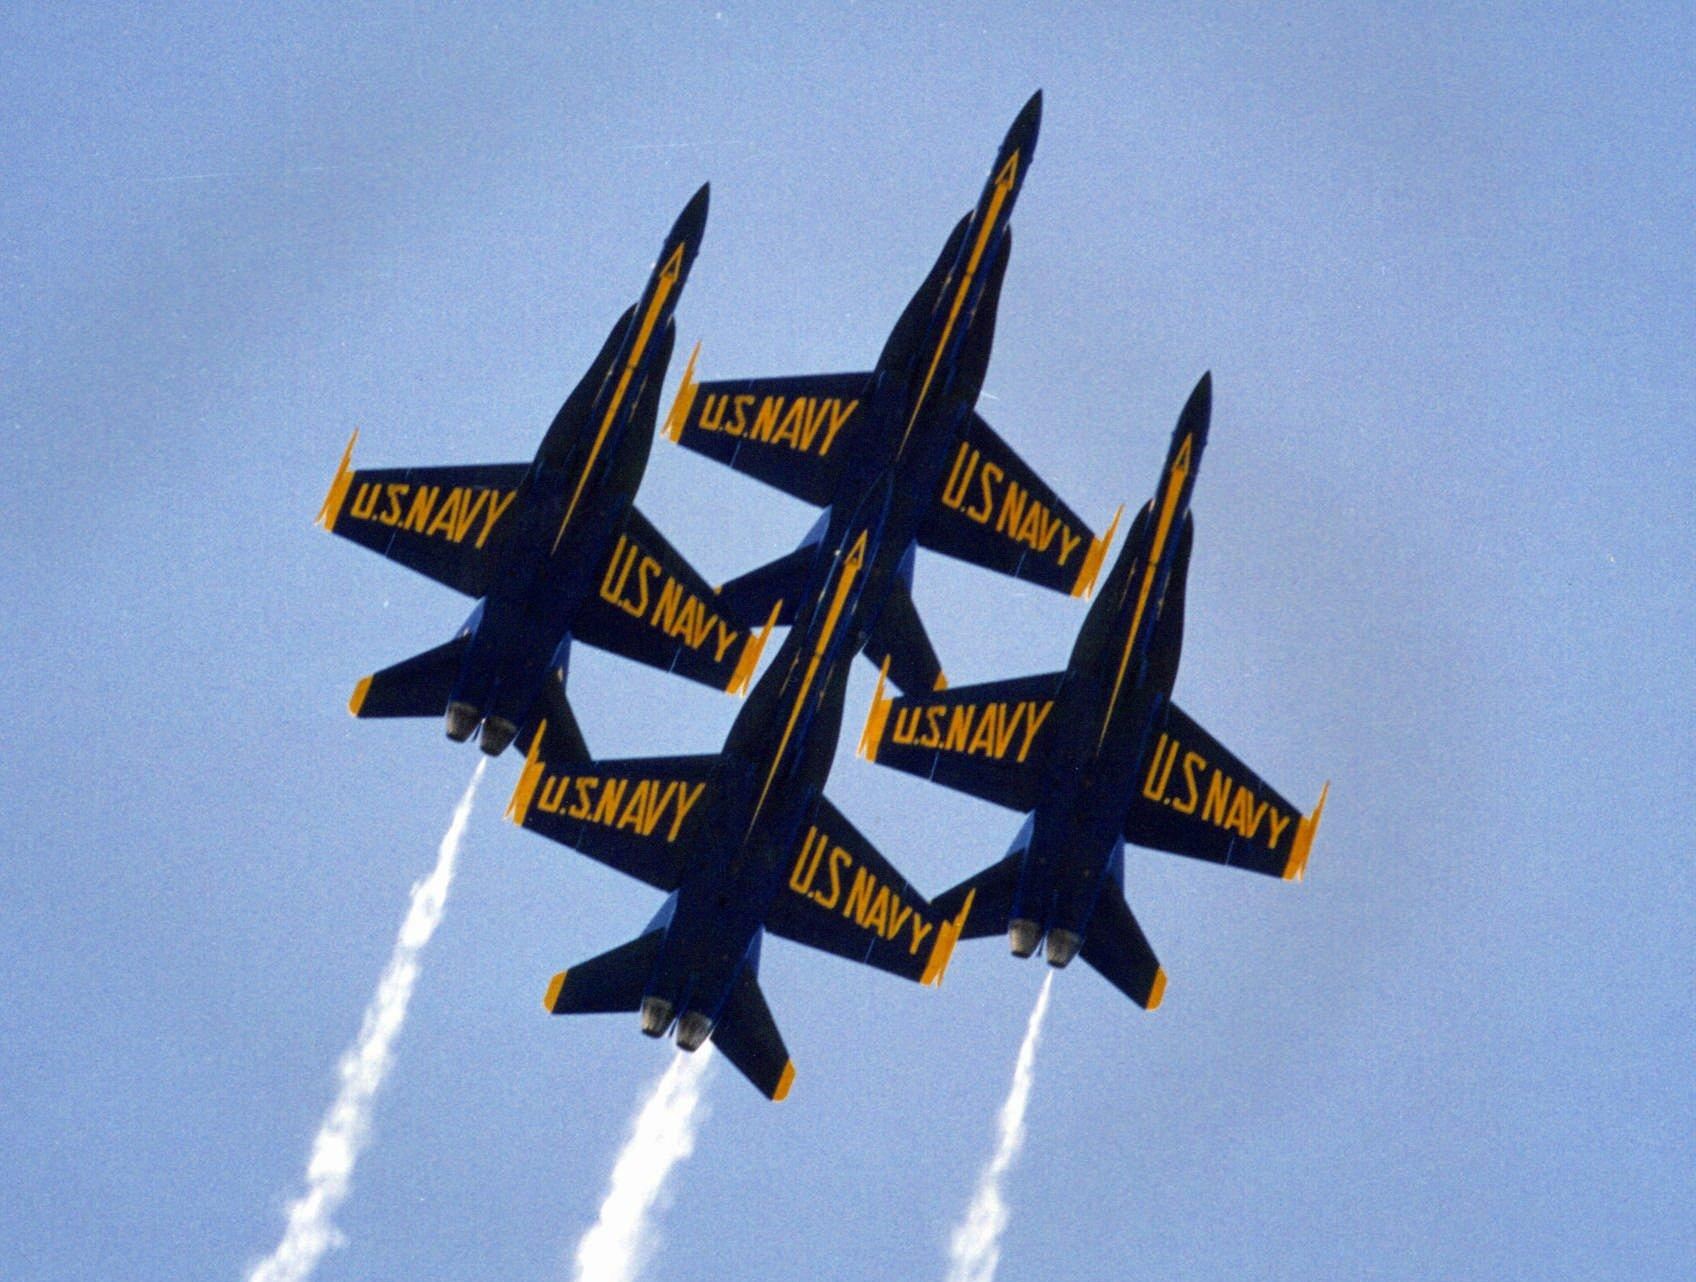 Navy's Blue Angels Returning to Seattle Seafair.